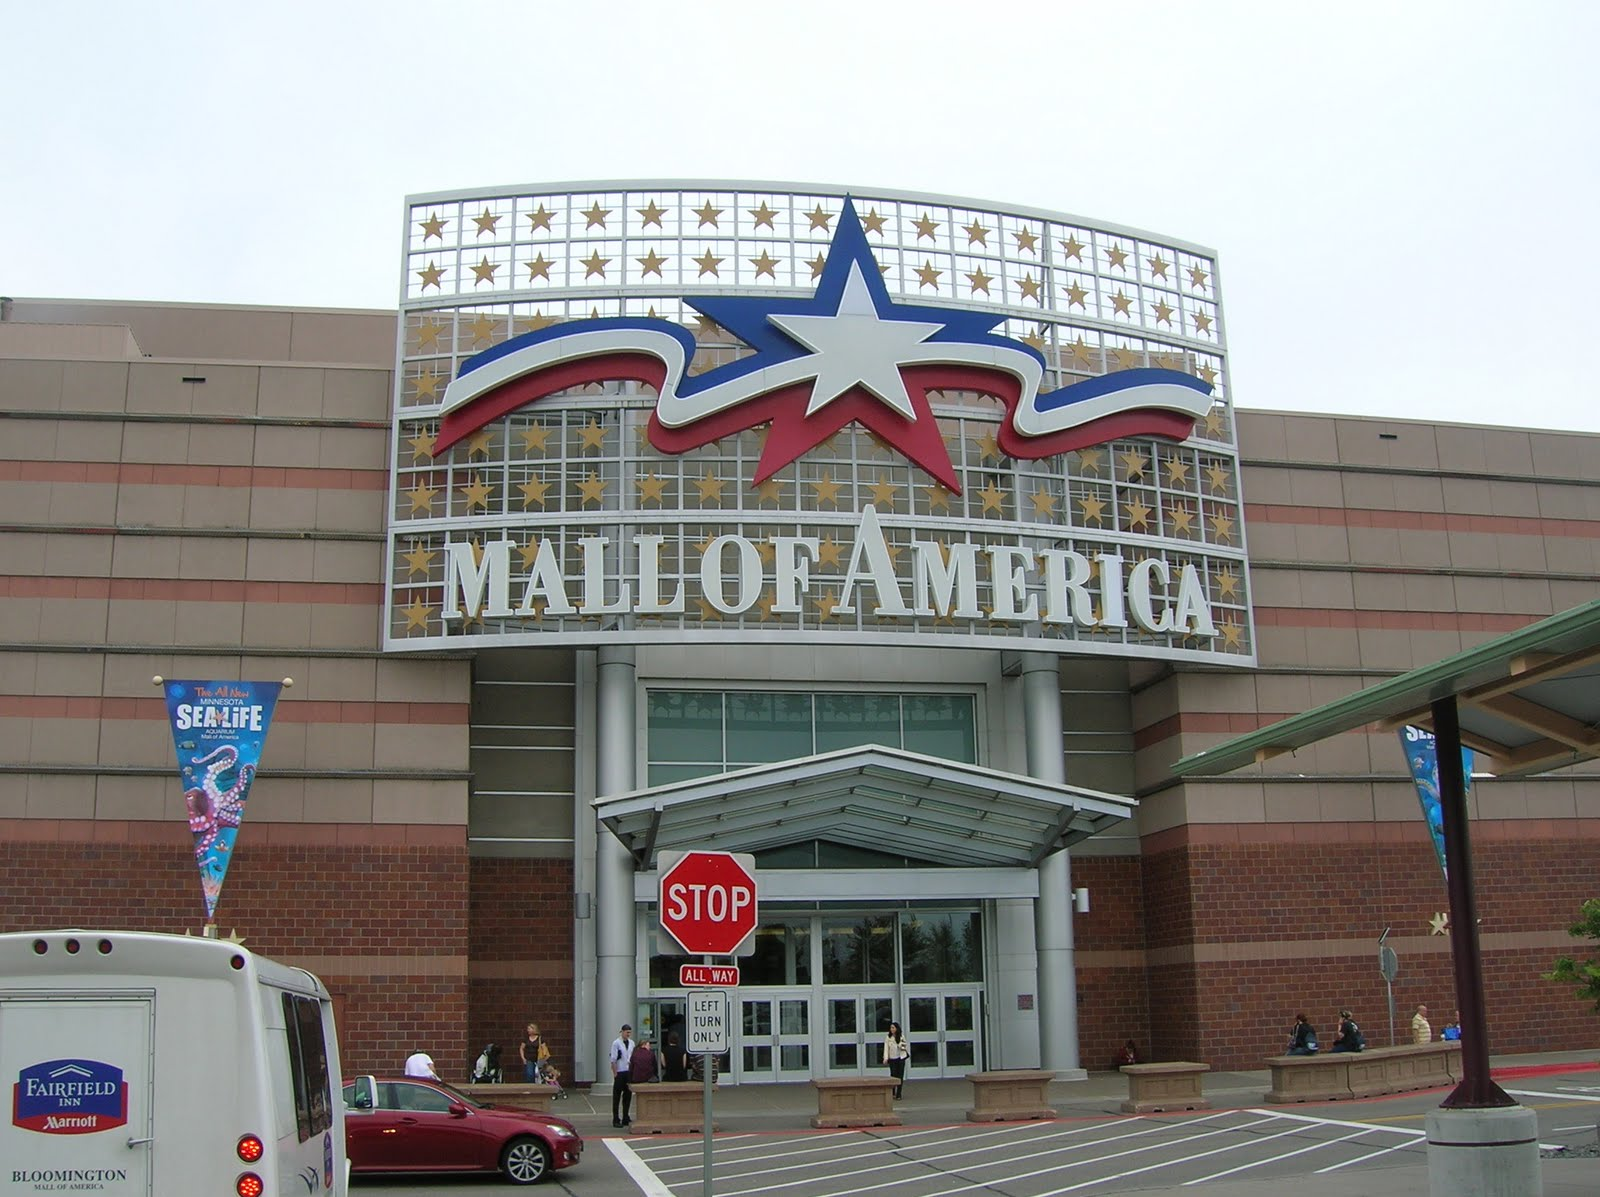 The Mall of America is a proud Beyond the Blue Ribbon company and they demonstrated very clearly why they have been awarded such a distinguished title. I was very proud to work beside these Forever Americans and look forward to their continued support of our mission!/5(K).